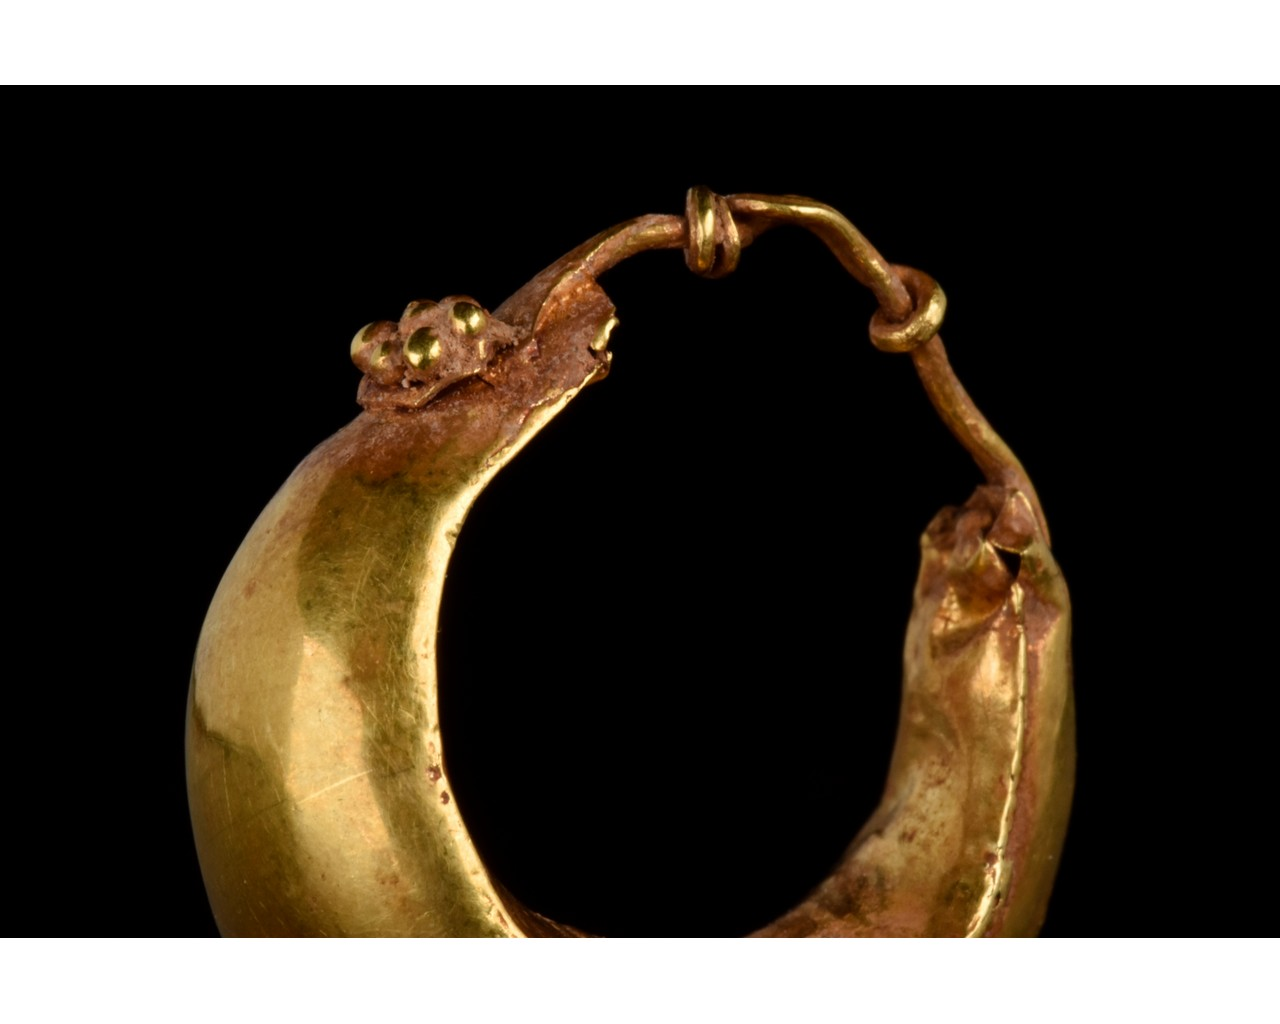 PAIR OF ROMAN GOLD BOAT SHAPED EARRINGS - FULL ANALYSIS - Image 5 of 11